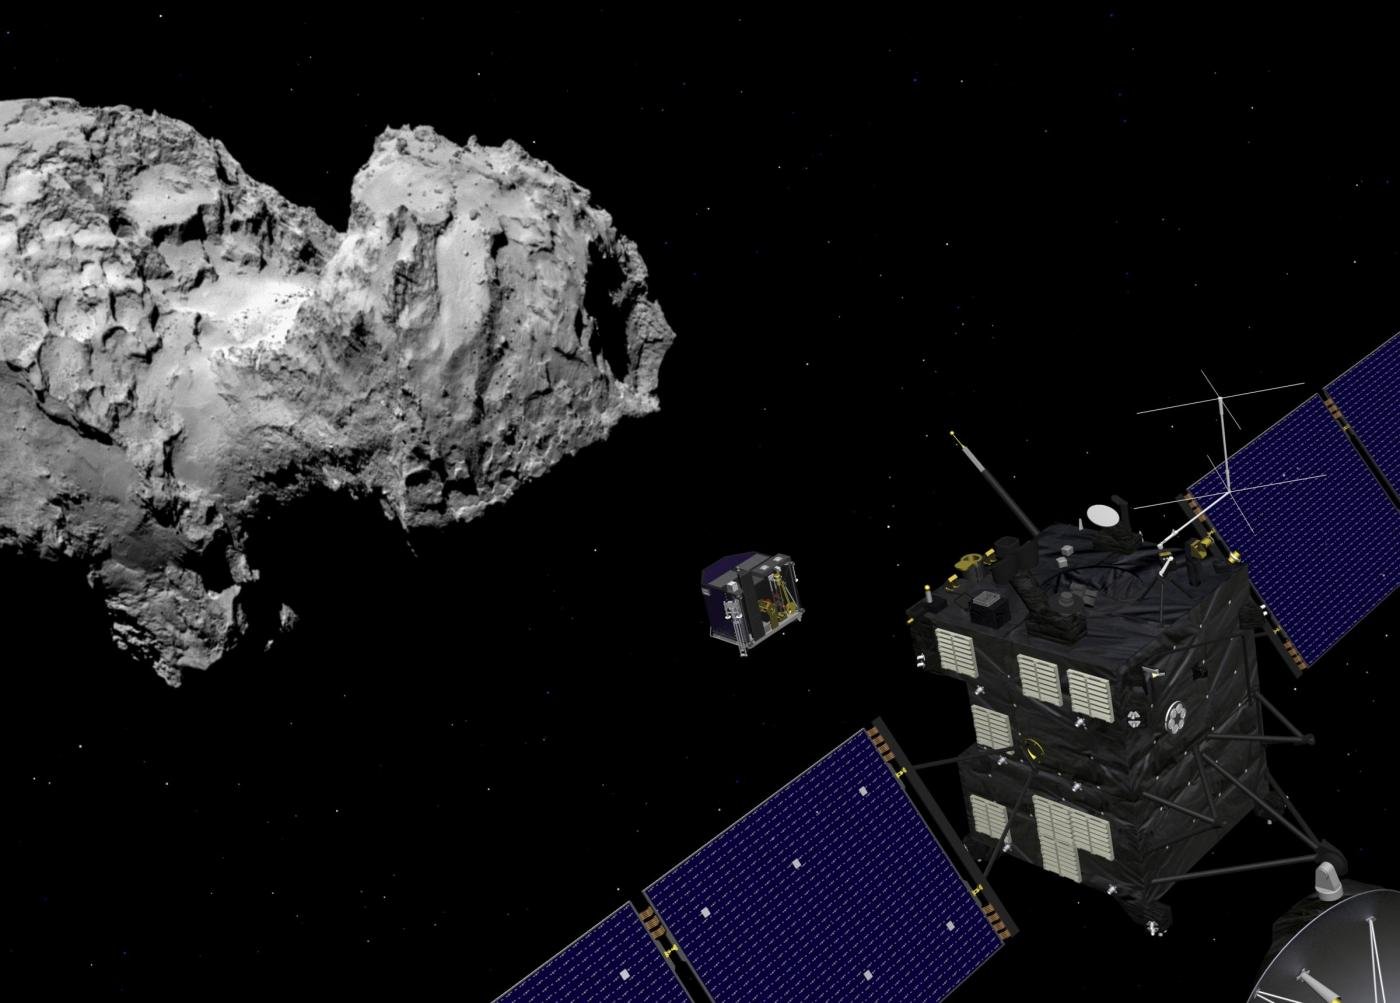 Bid to land probe on comet